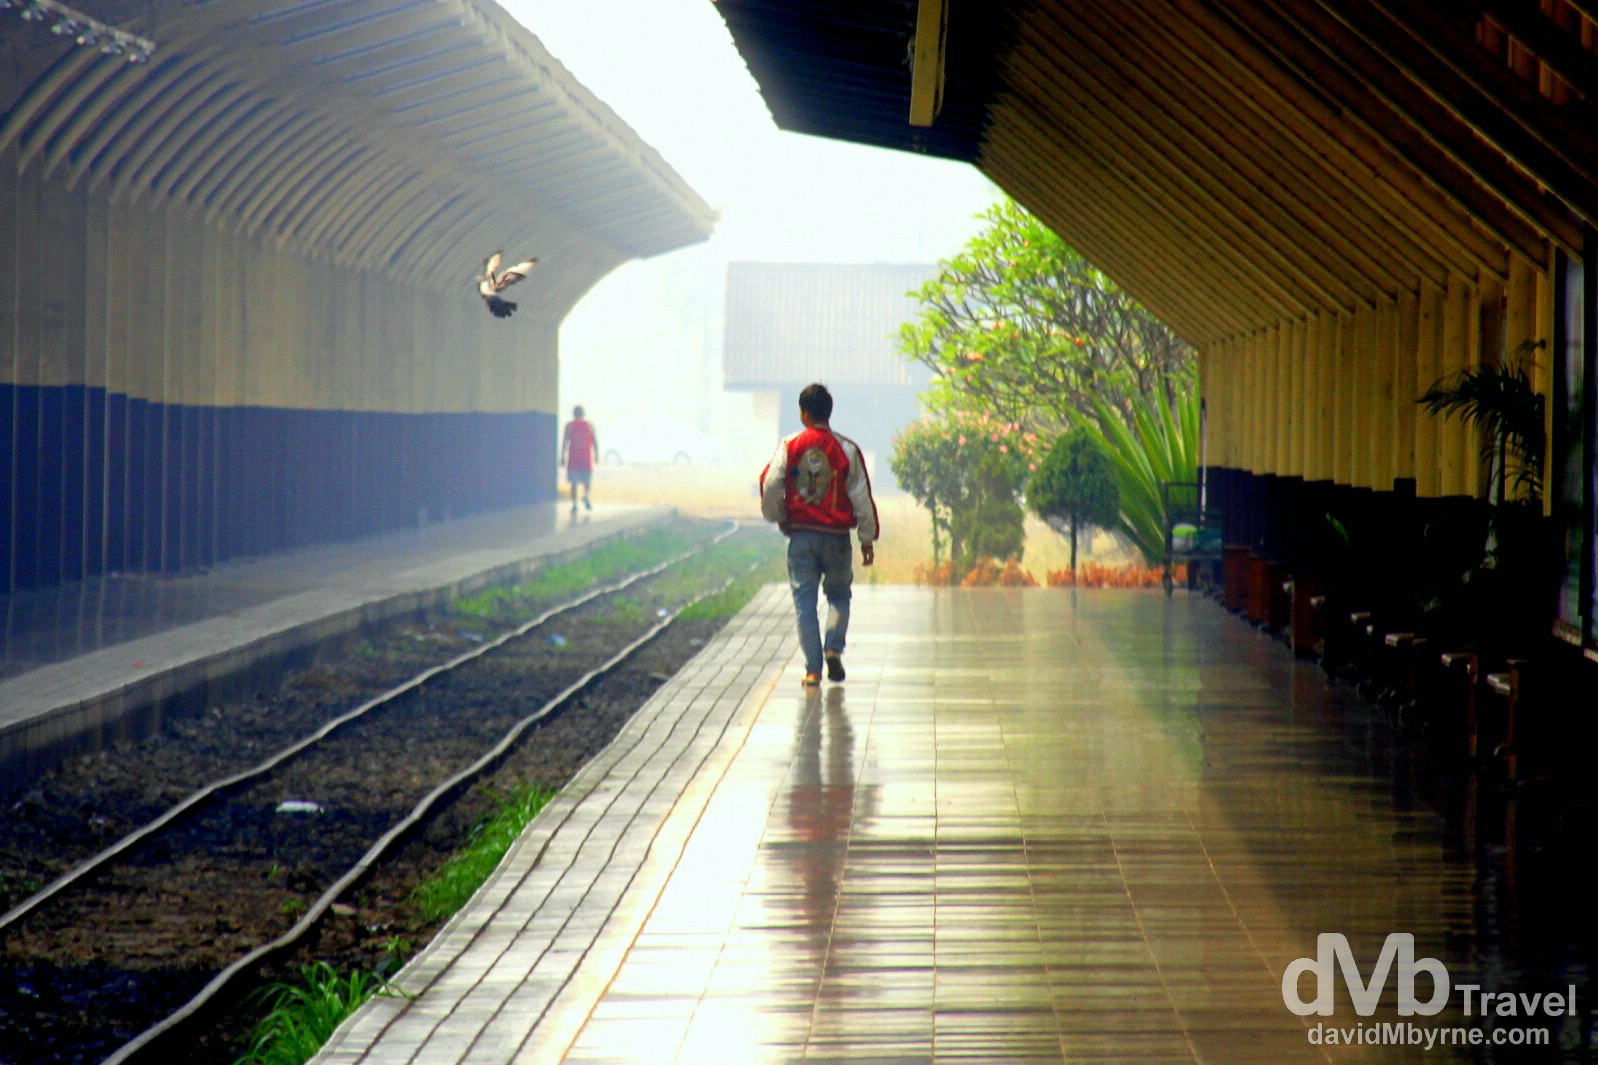 The platform of Chiang Mai train station just after getting off the 16-hour train trip from Bangkok. I saw this guy walking down the platform away from me and the scene immediately struck me as photogenic. So I reached for my camera and snapped this image just as a pigeon was flying down towards the tracks from the platform roof overhead. I never even noticed the pigeon until reviewing the image much later. It was a welcomed addition to the shot. Chiang Mai Railway Station, northern Thailand. March 9th 2012.